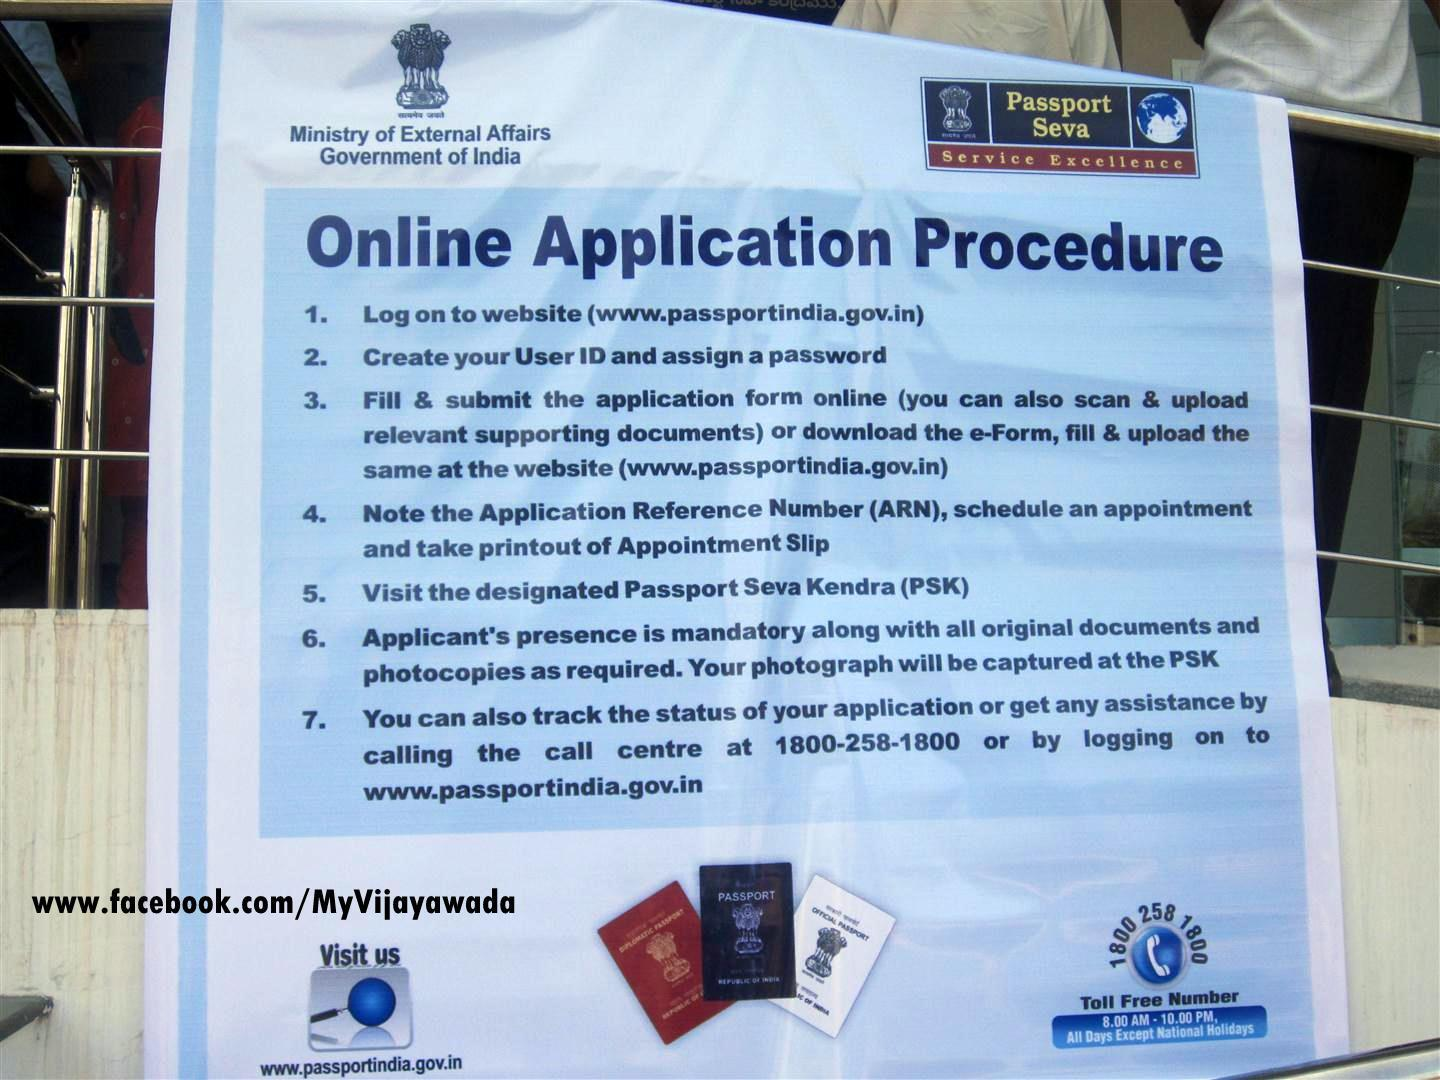 My vijayawada vijayawada passport office application procedure my vijayawada falaconquin